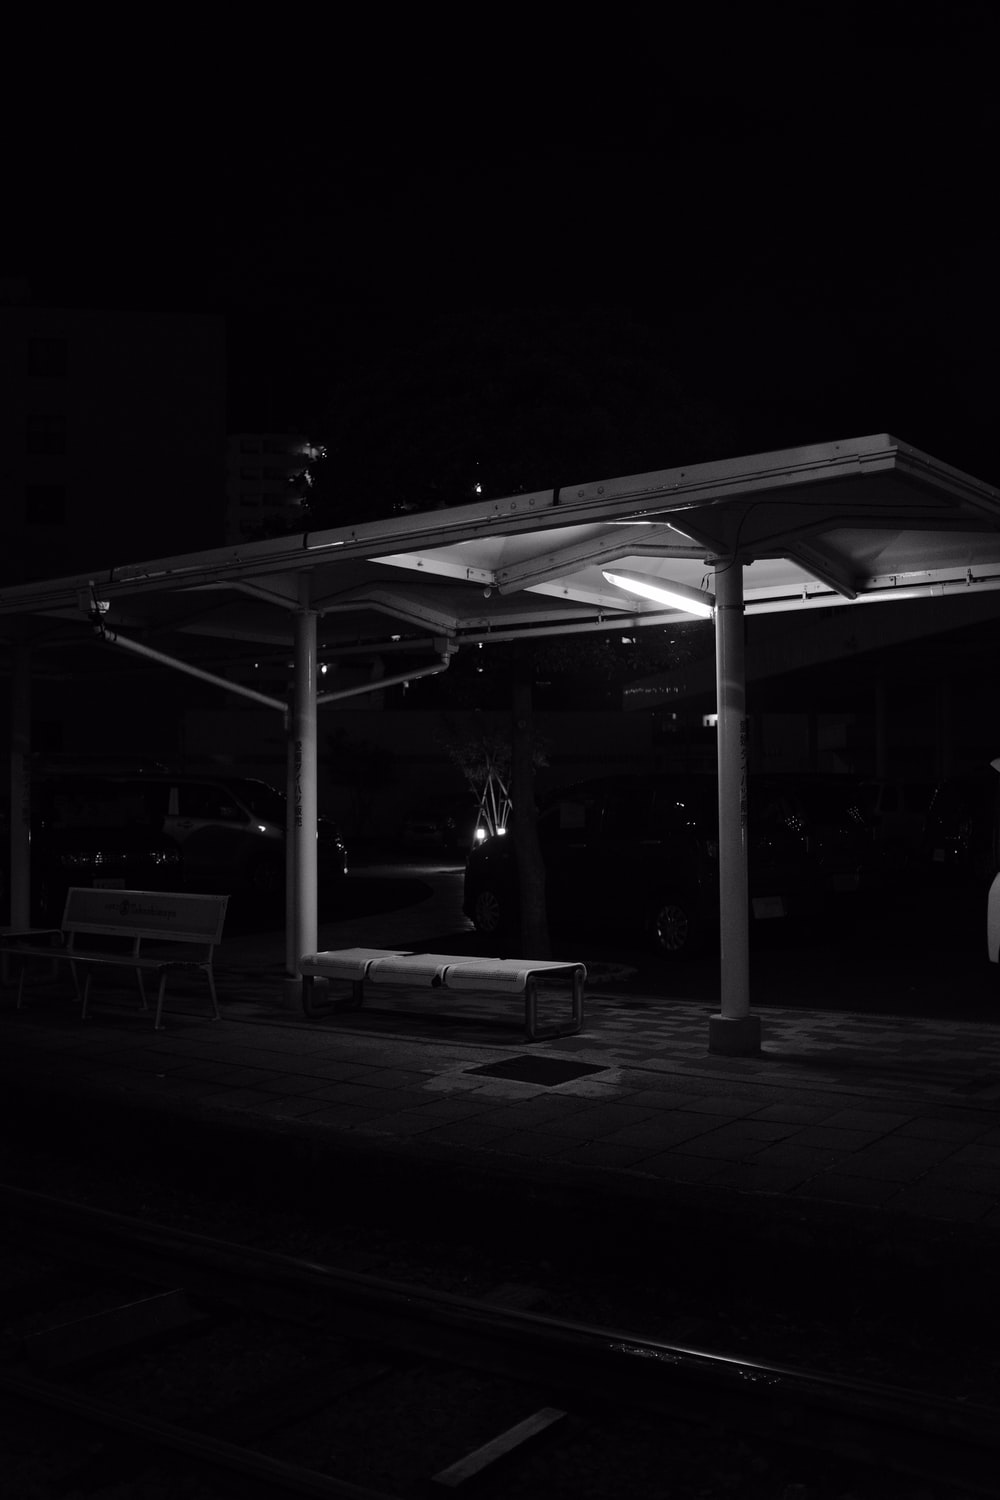 grayscale waiting shed during night